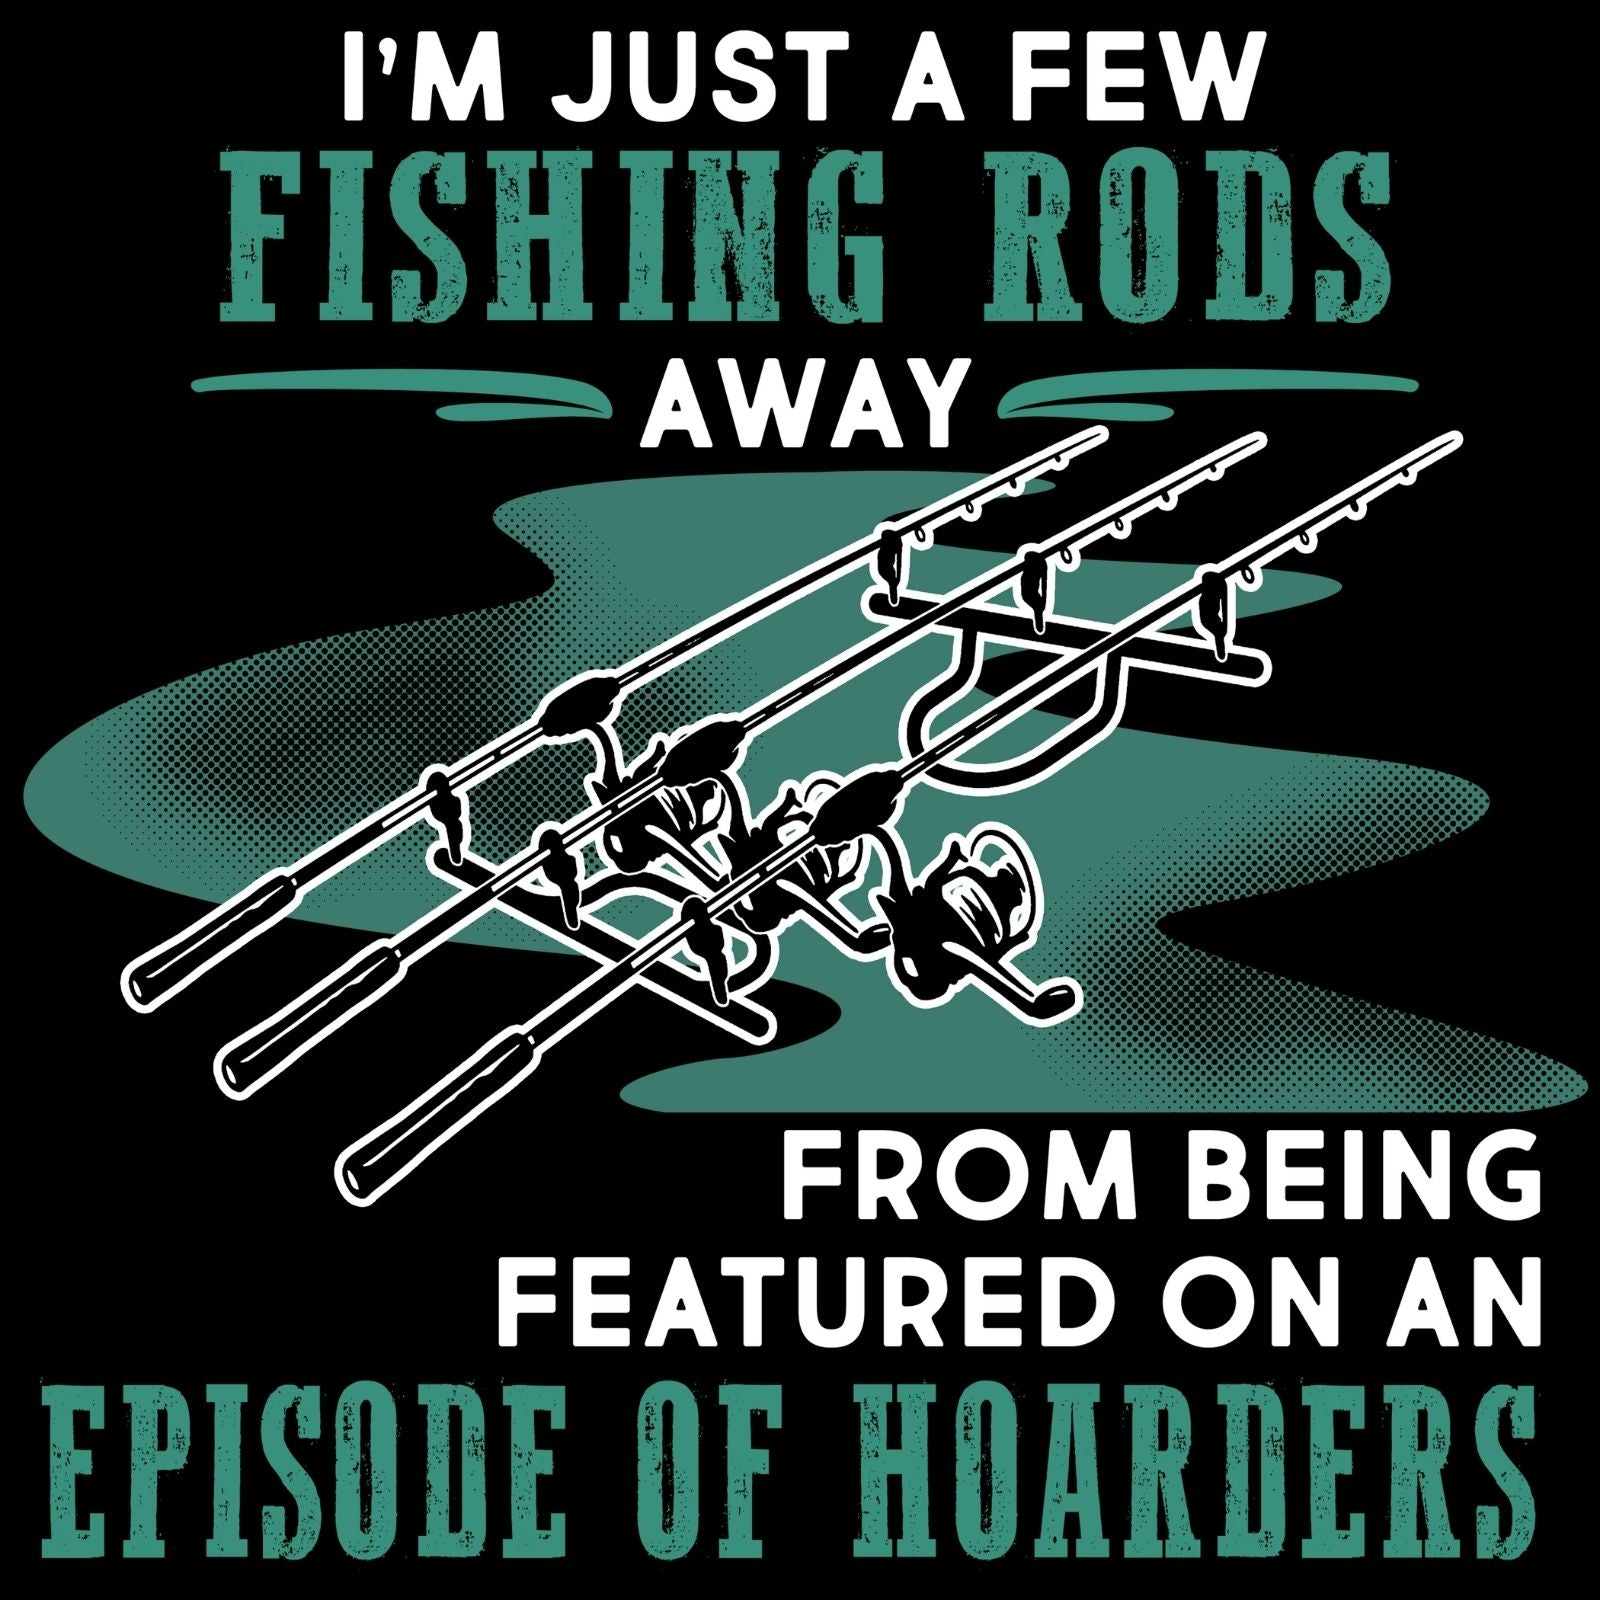 Im Just A Few Fishing Rods Away - Bastard Graphics